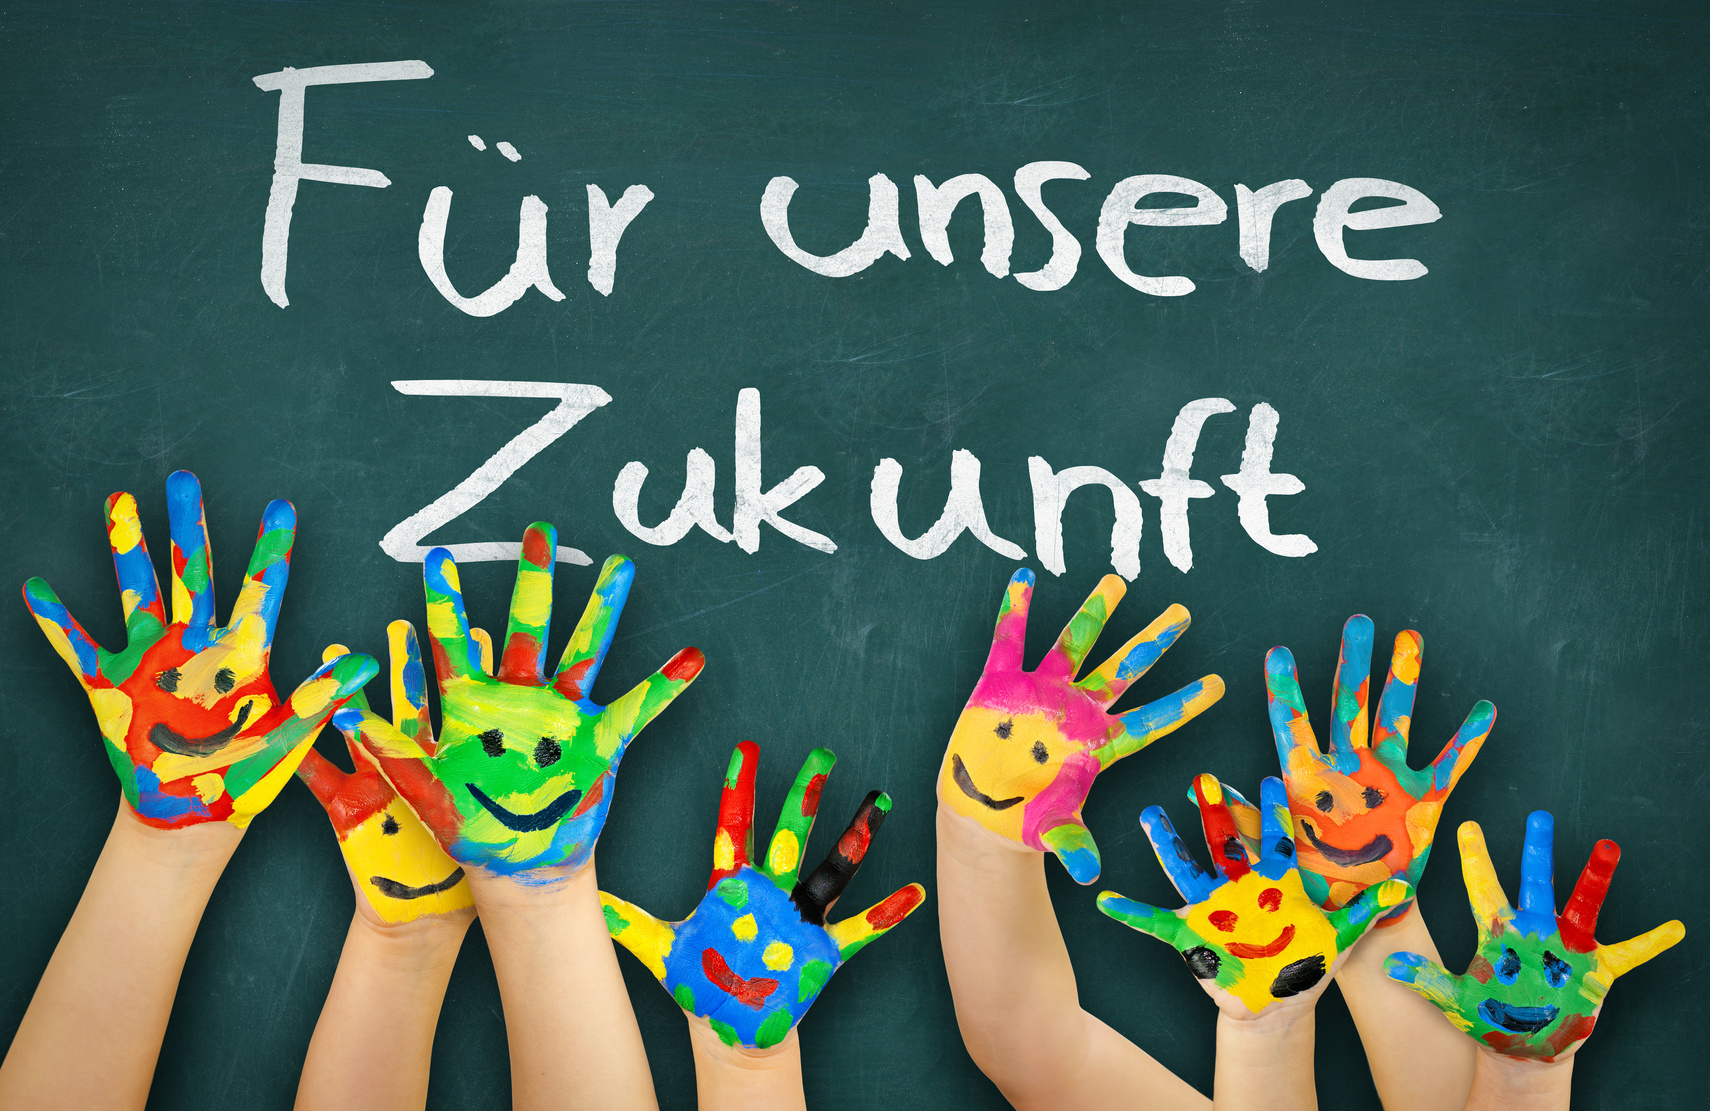 Für unsere Zukunft – For our future - The essence of coming-of-age